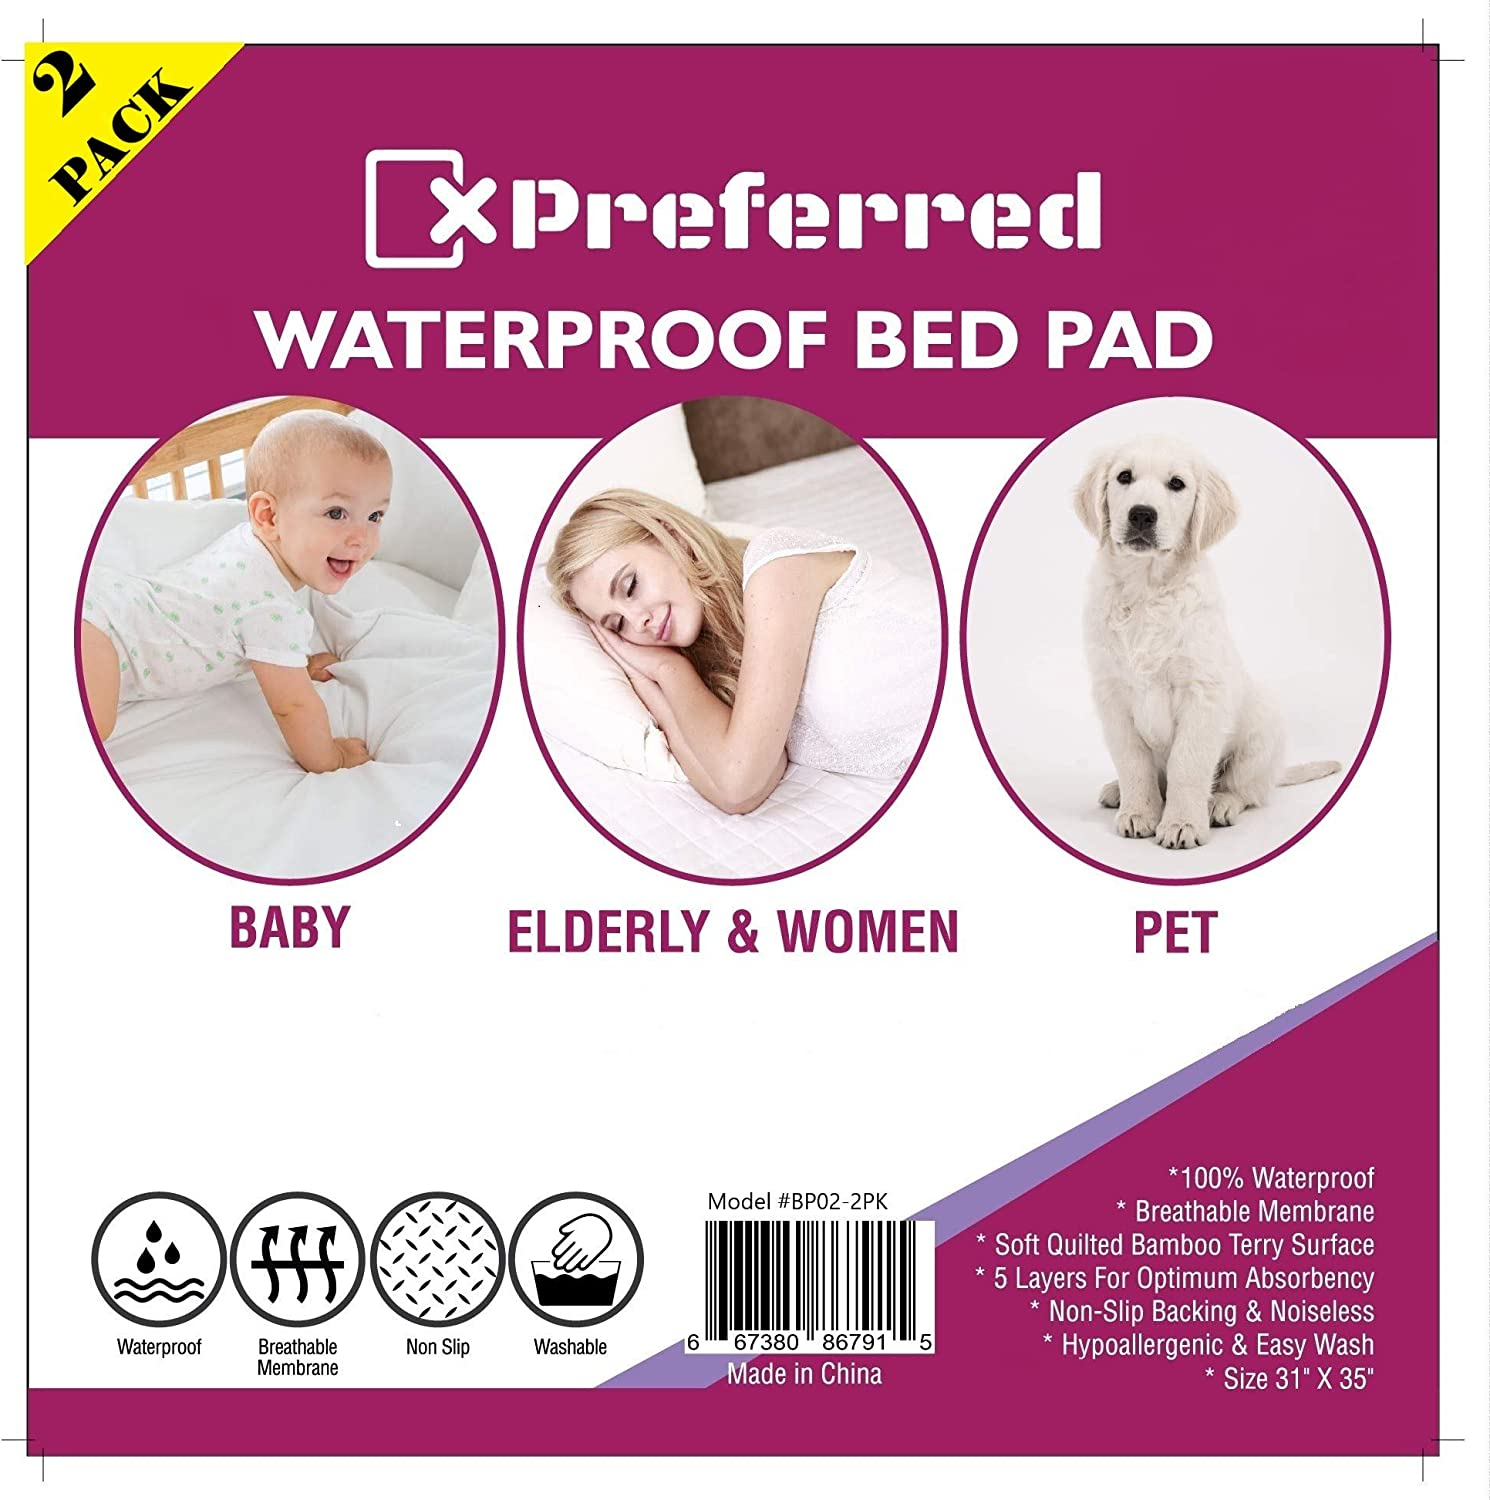 Hypoallergenic 1 Pack Waterproof Bed Pad Washable Terry Cloth -Baby Mattress and Chair Protective Cover - by X-Preferred 31x35 in Dogs Elderly Bed Wetting Non Slip Breathable